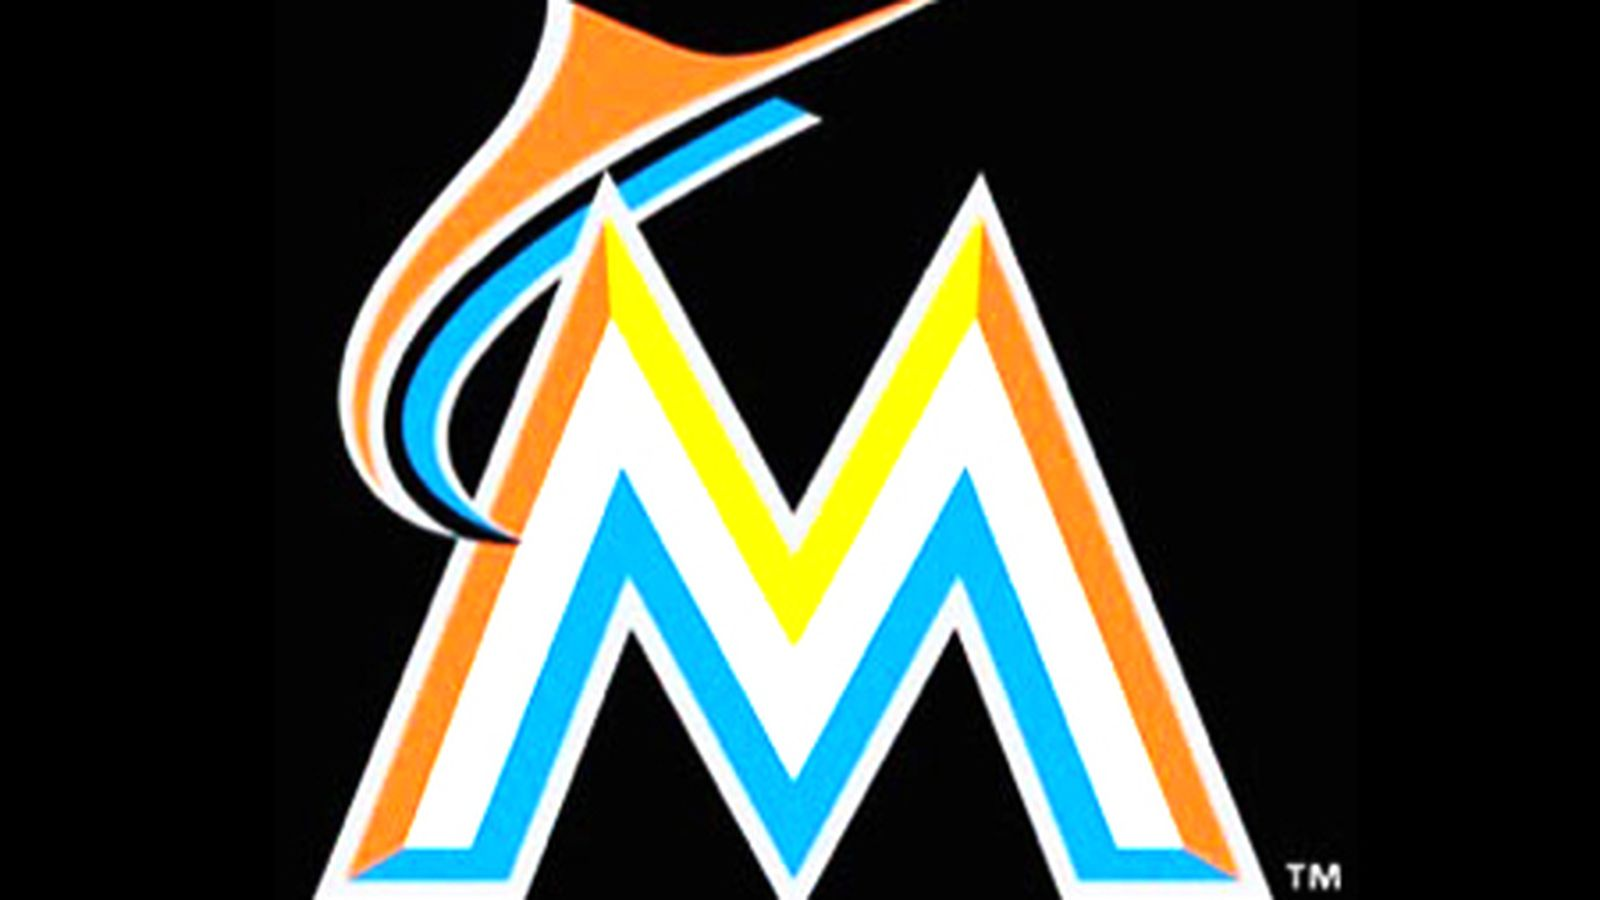 miami marlins new logo iphone wallpaper pictures to pin on